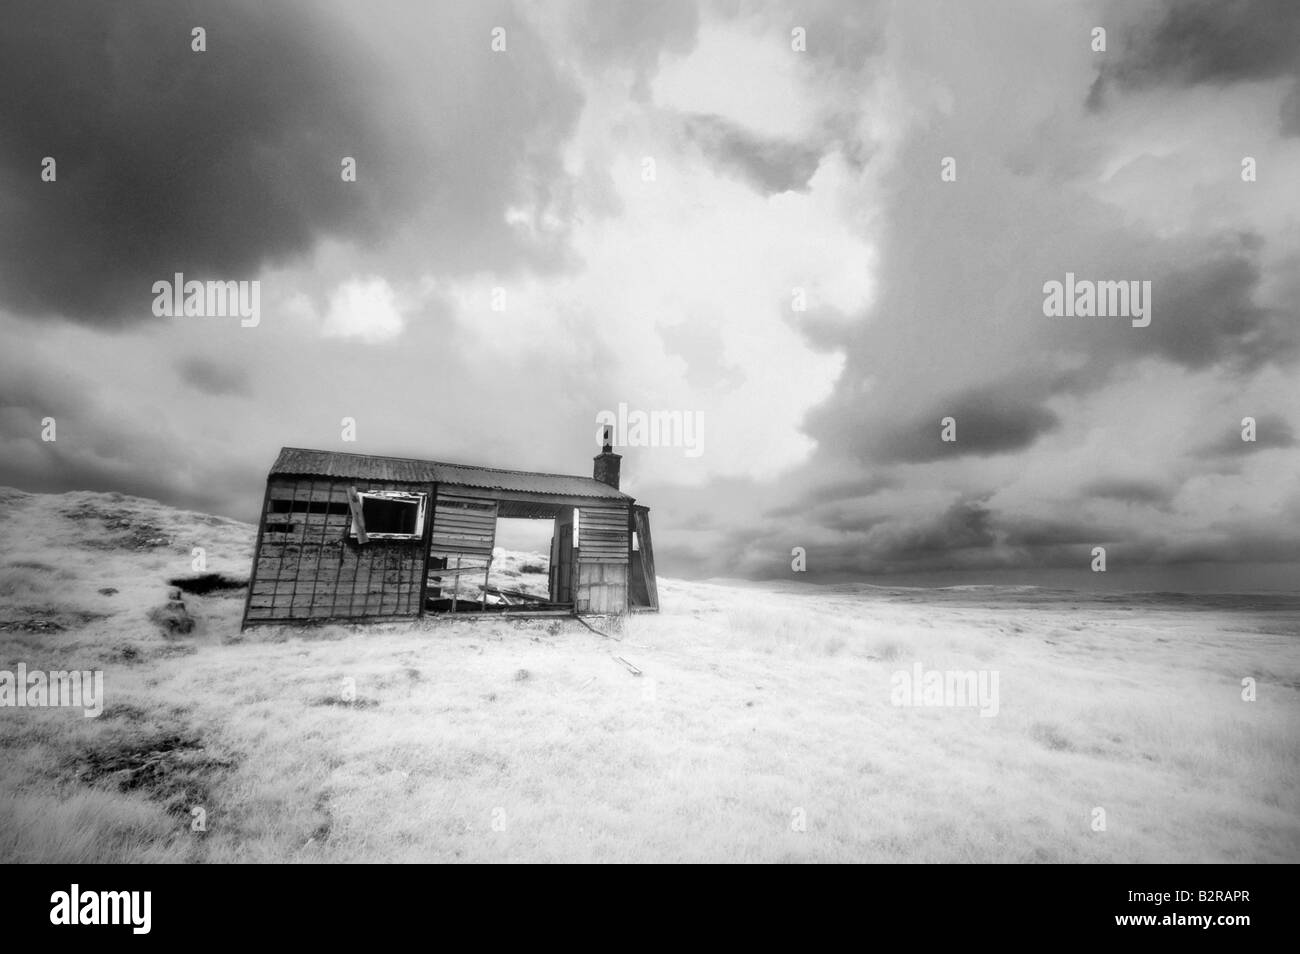 Infrared image of a shieling, Isle of Lewis, Hebrides, Scotland, UK - Stock Image